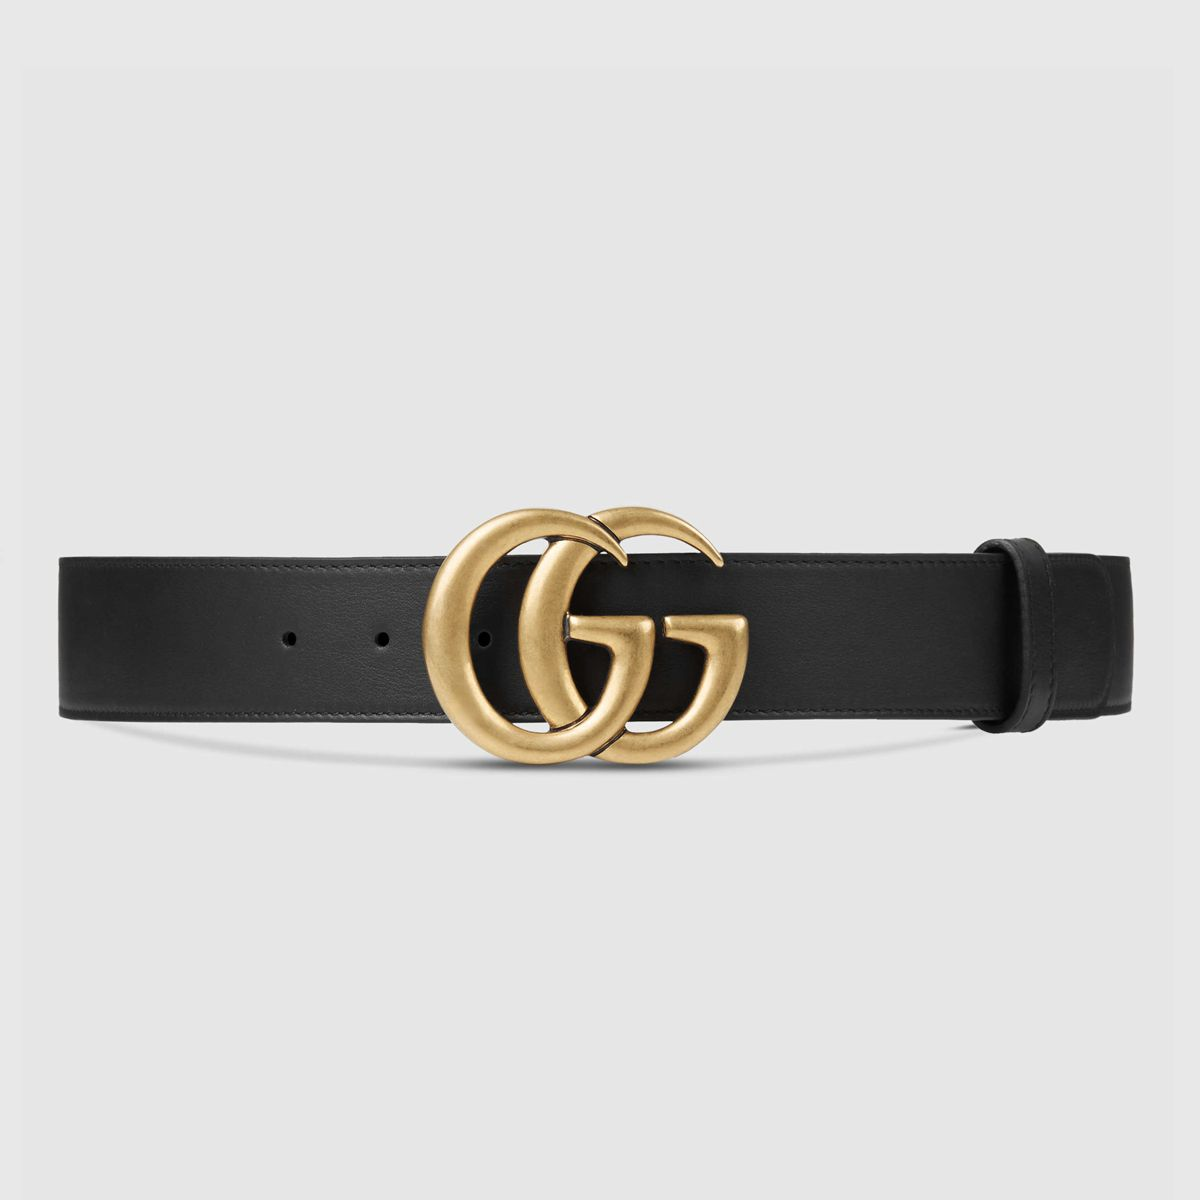 undefined 265463 1534424535219 product.1200x1200uc - 10 Extra Inexpensive Methods to Add Gucci Into Your Wardrobe